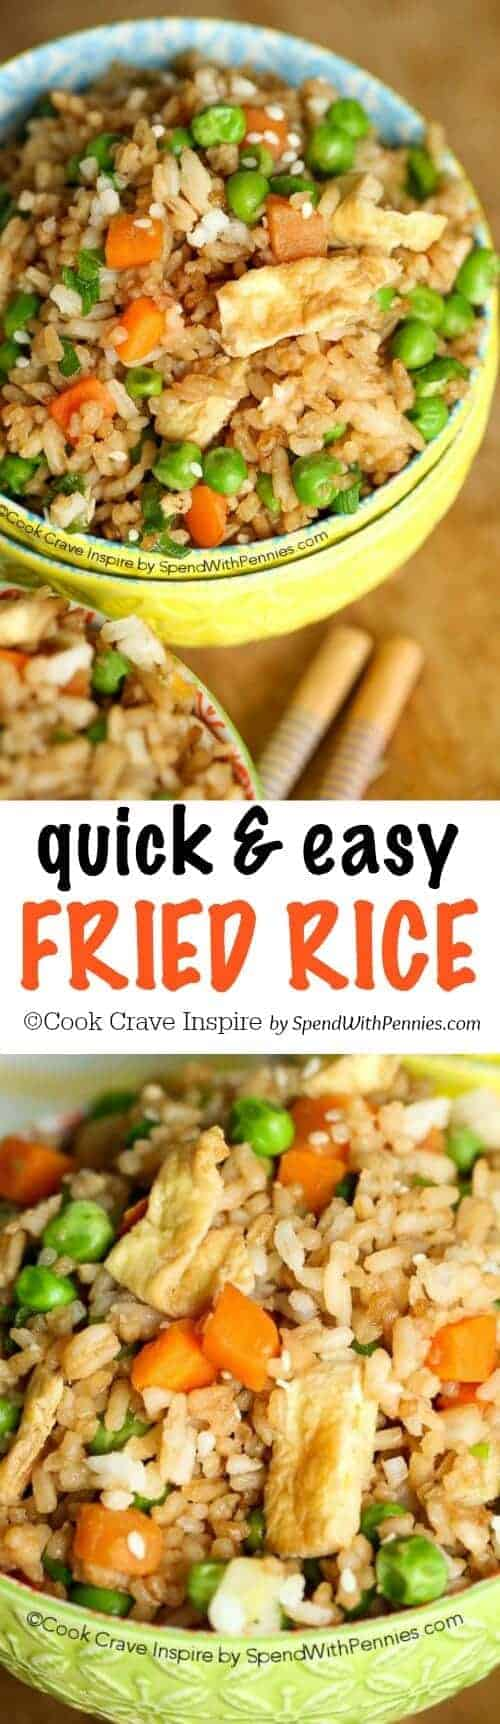 This quick and easy Fried Rice recipe is one of our favorites! You can add any kind of vegetable or protein so it's the perfect way to enjoy any leftovers you might have! The best part is that it takes just about 15 minutes!